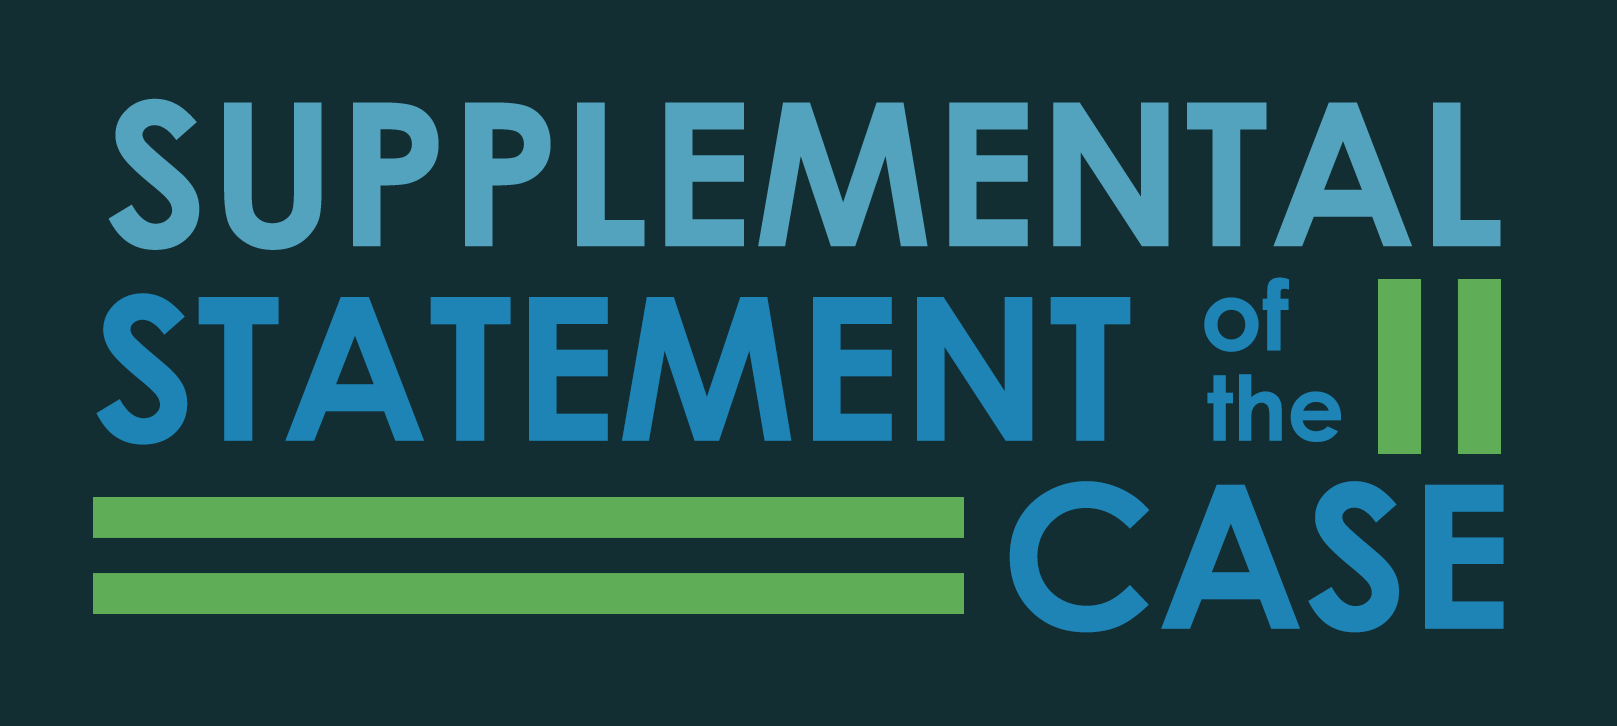 What is a supplemental statement of the case (SSOC)?